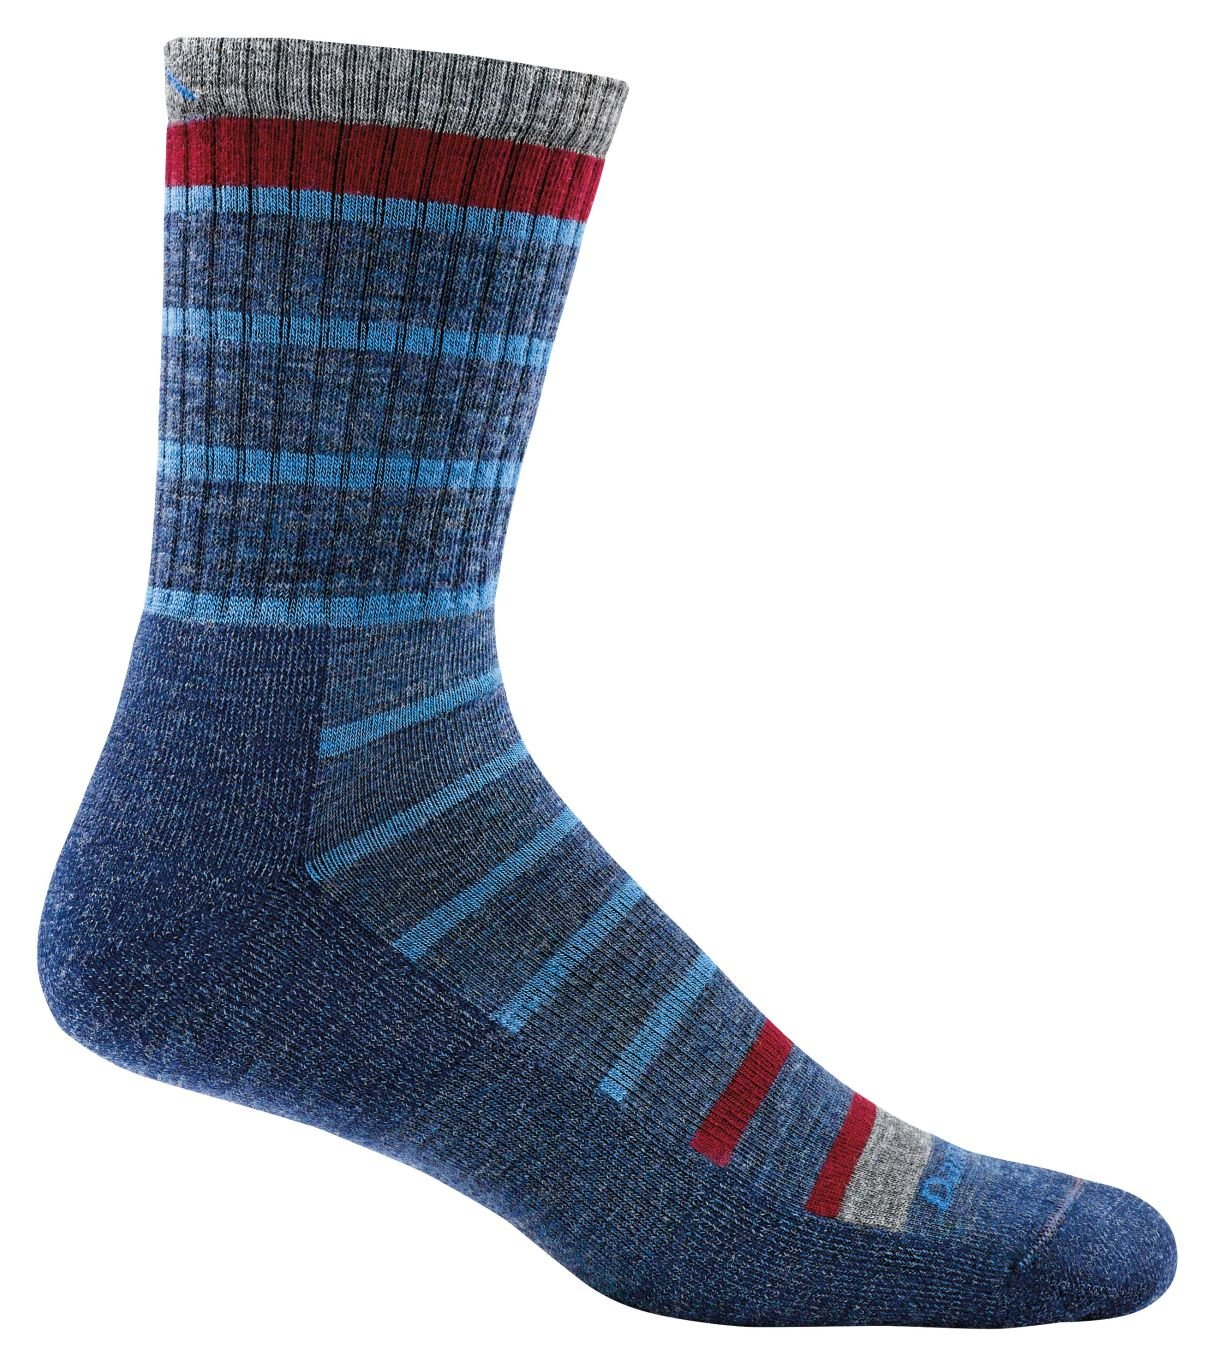 Darn Tough Via Ferratta Jr. Micro Crew Light Cushion Sock - Kid's Blue Medium by Darn Tough